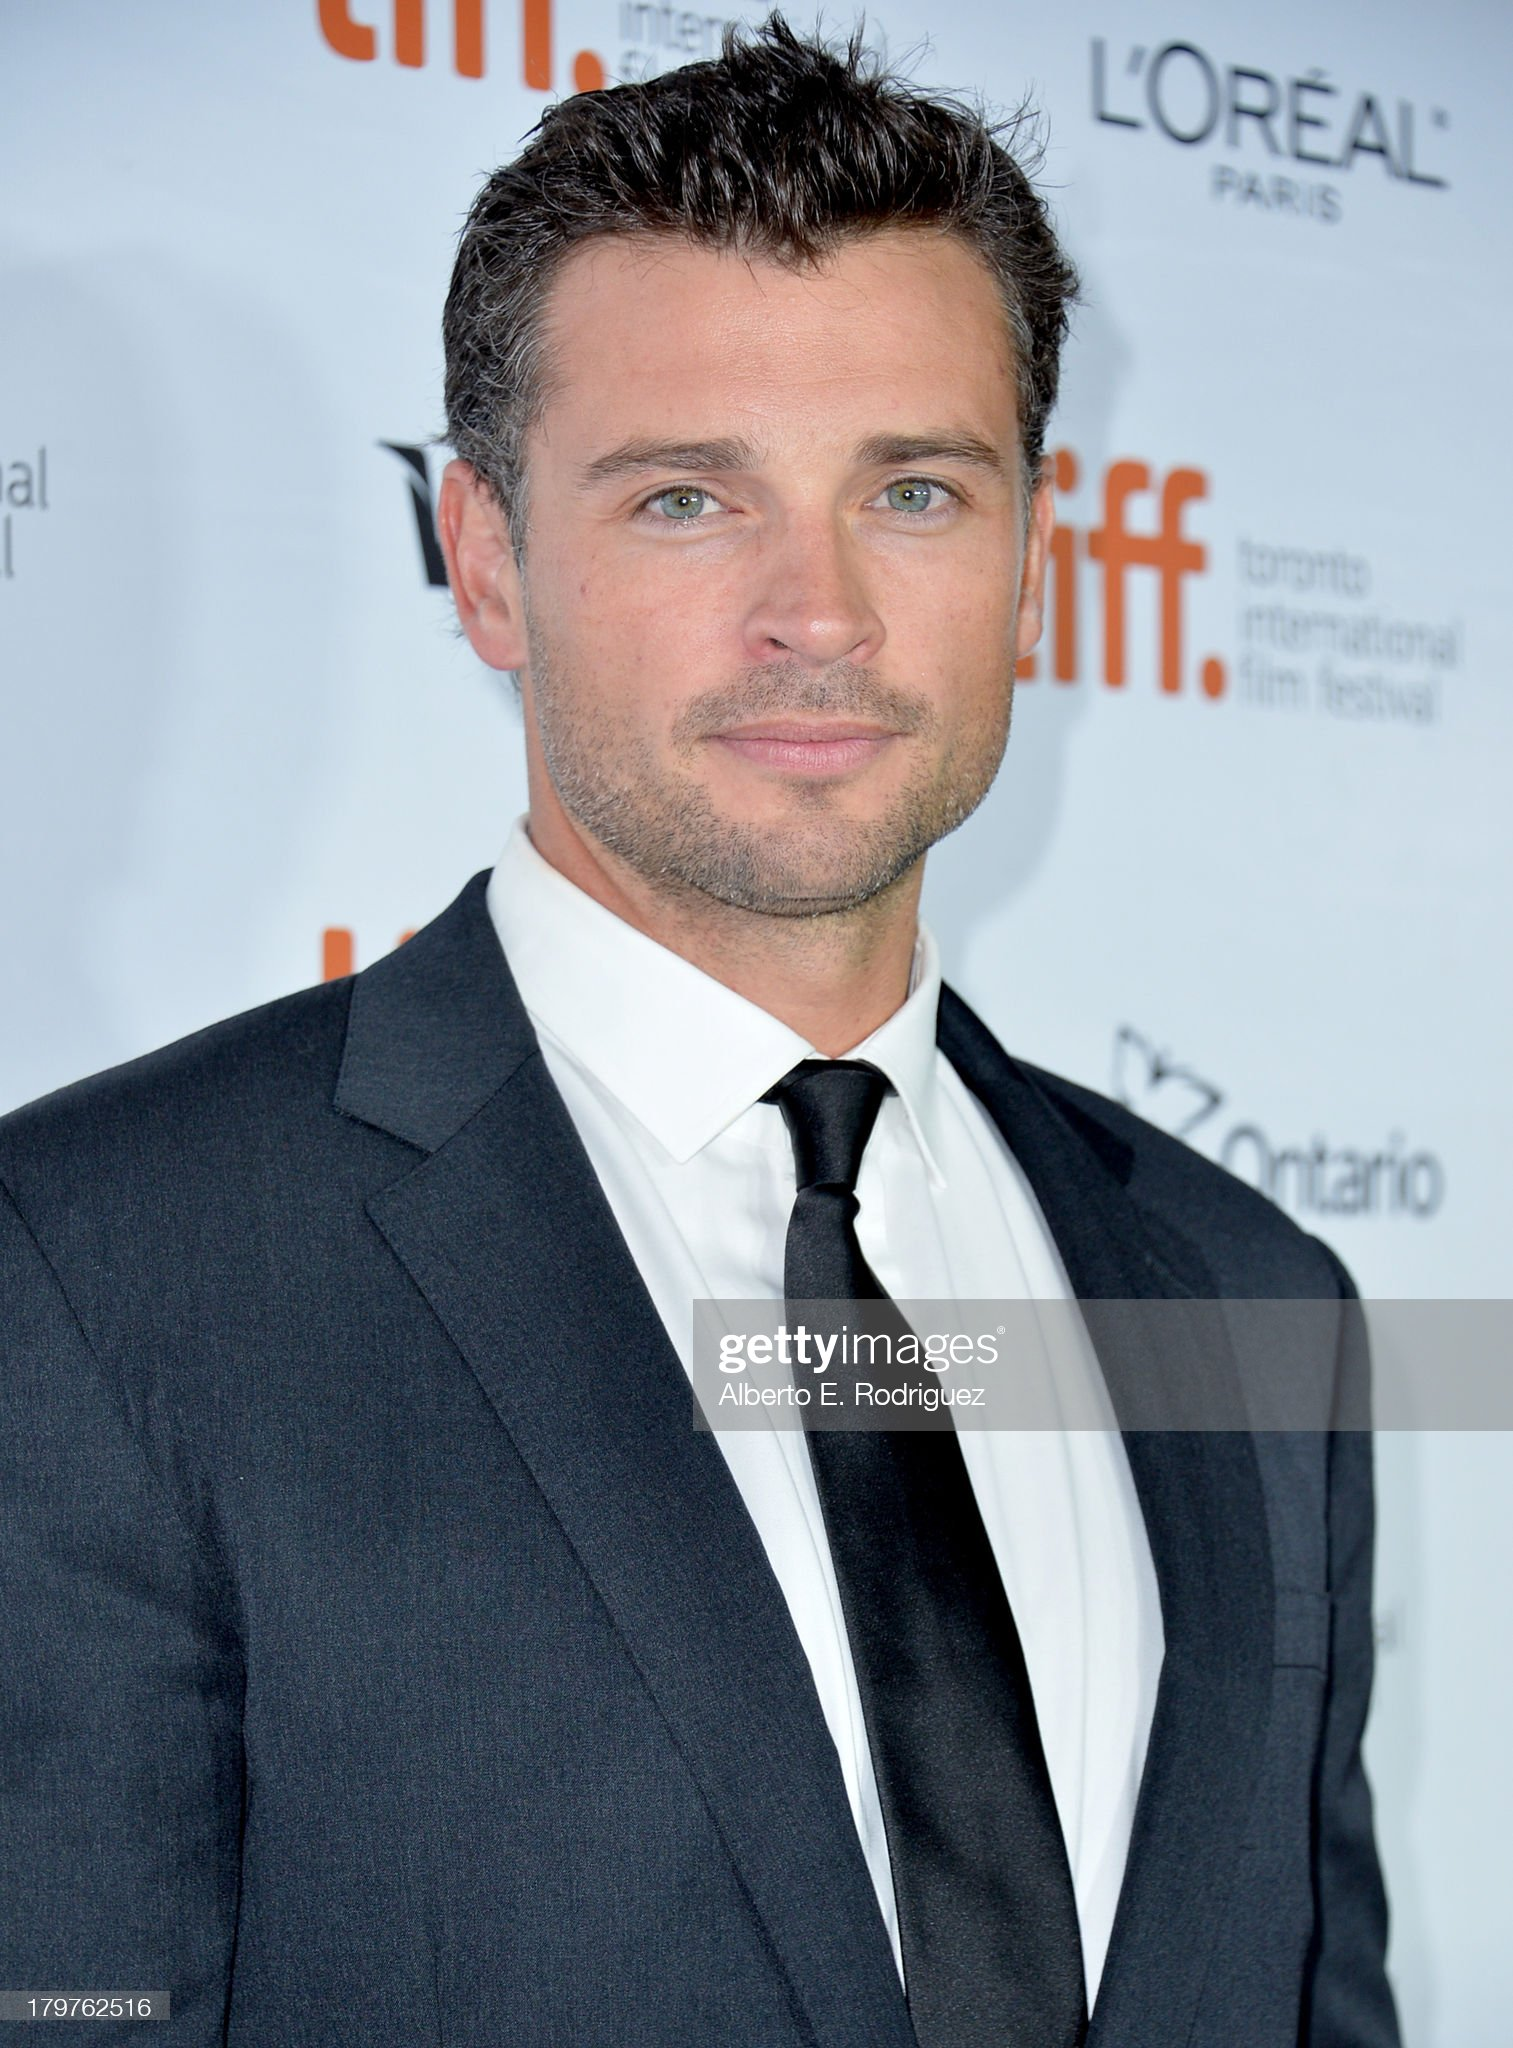 Ojos verdes - Famosas y famosos con los ojos de color VERDE Actor-tom-welling-arrives-at-the-parkland-premiere-during-the-2013-picture-id179762516?s=2048x2048